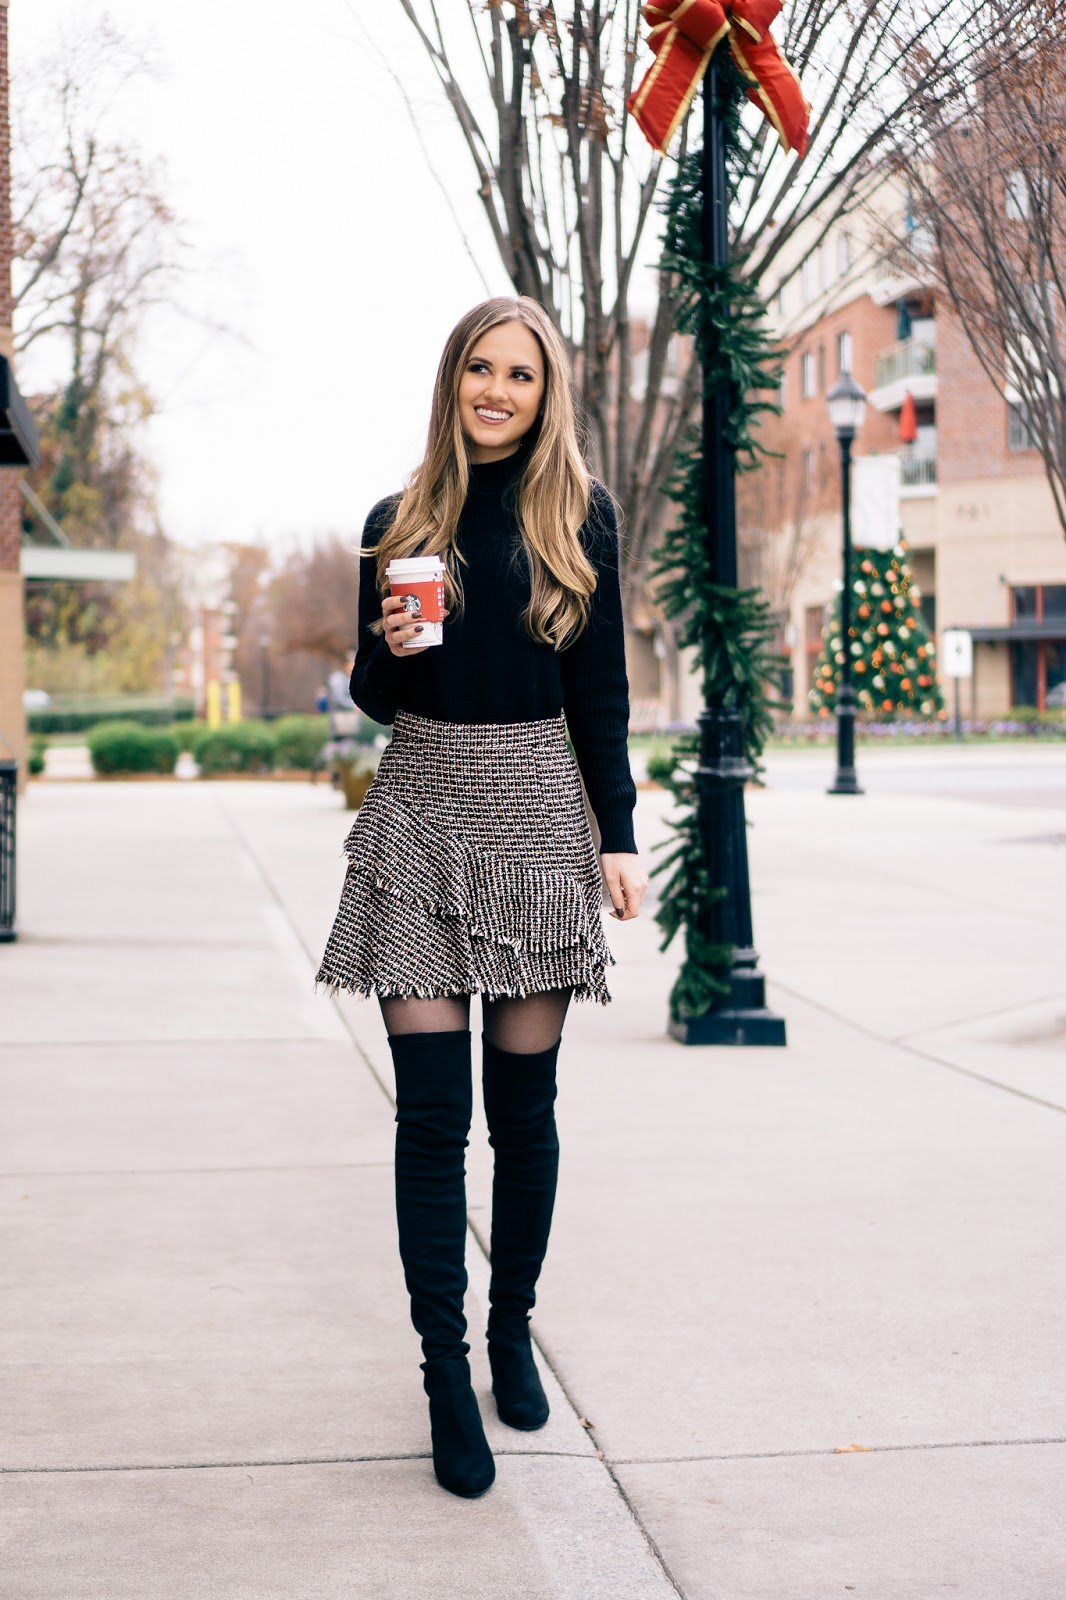 Tweed Skirts and Over,The,Knee Boots